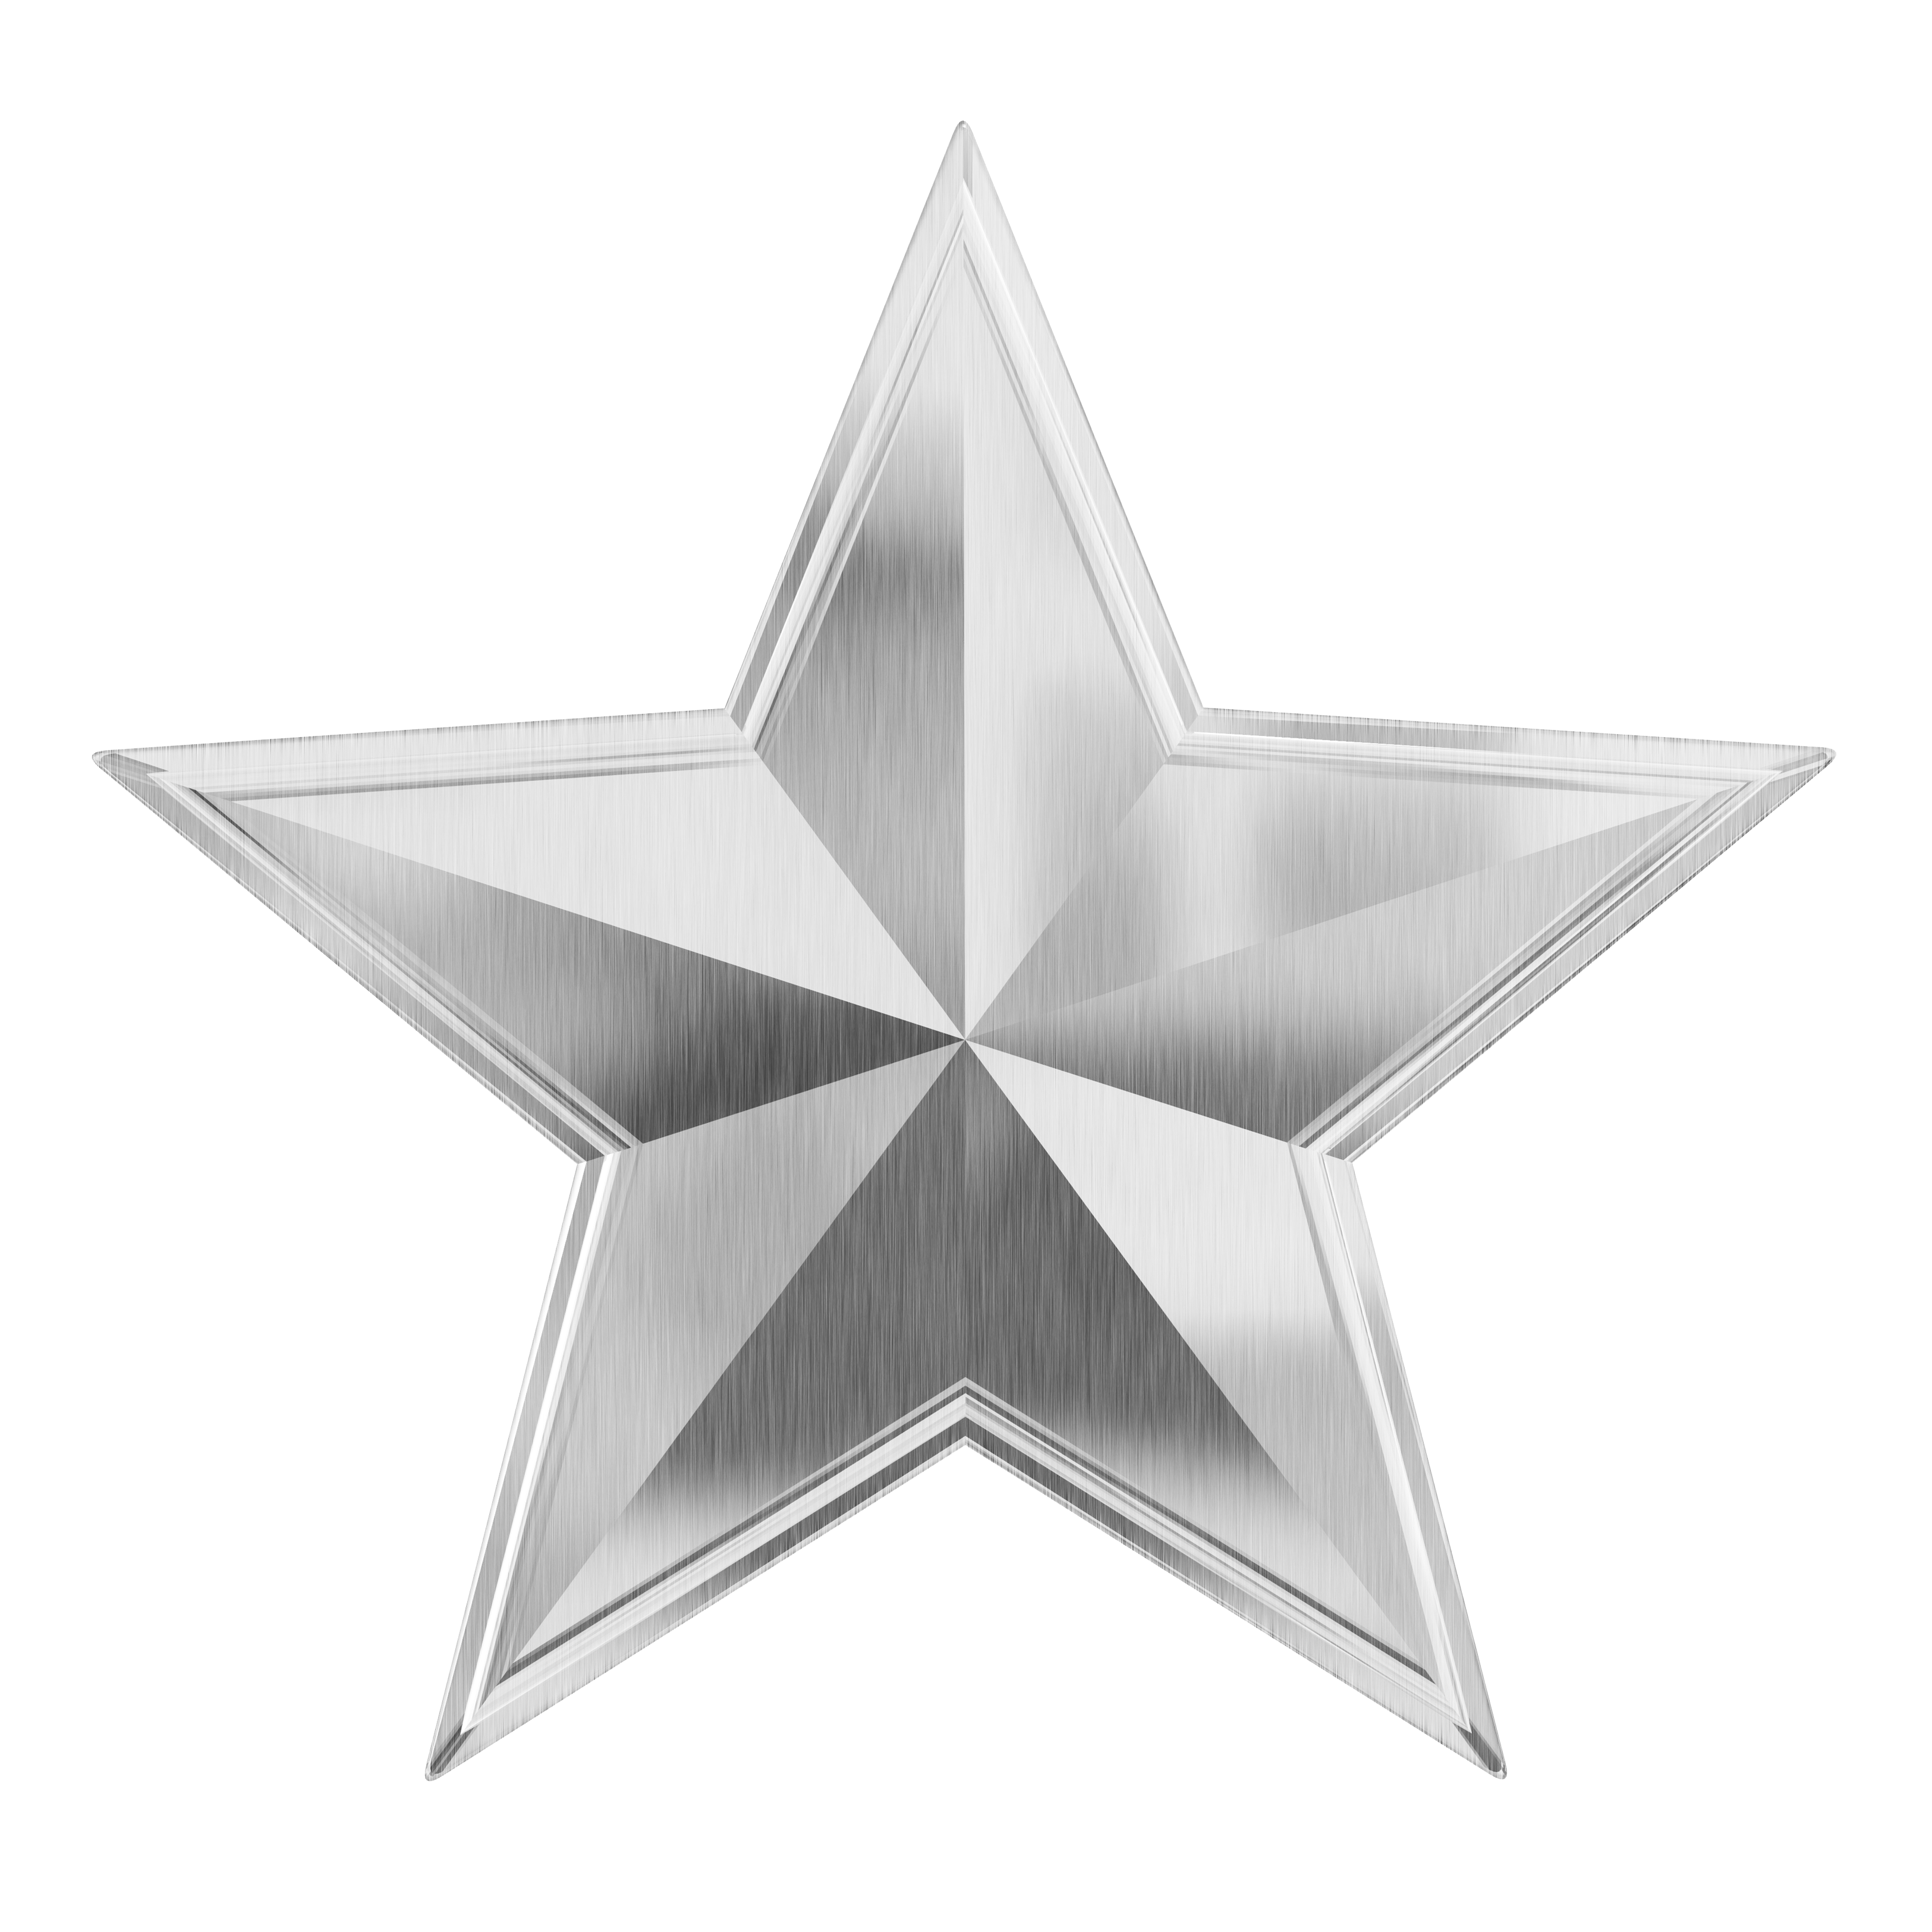 Silver Star PNG Image - PurePNG | Free transparent CC0 PNG ...